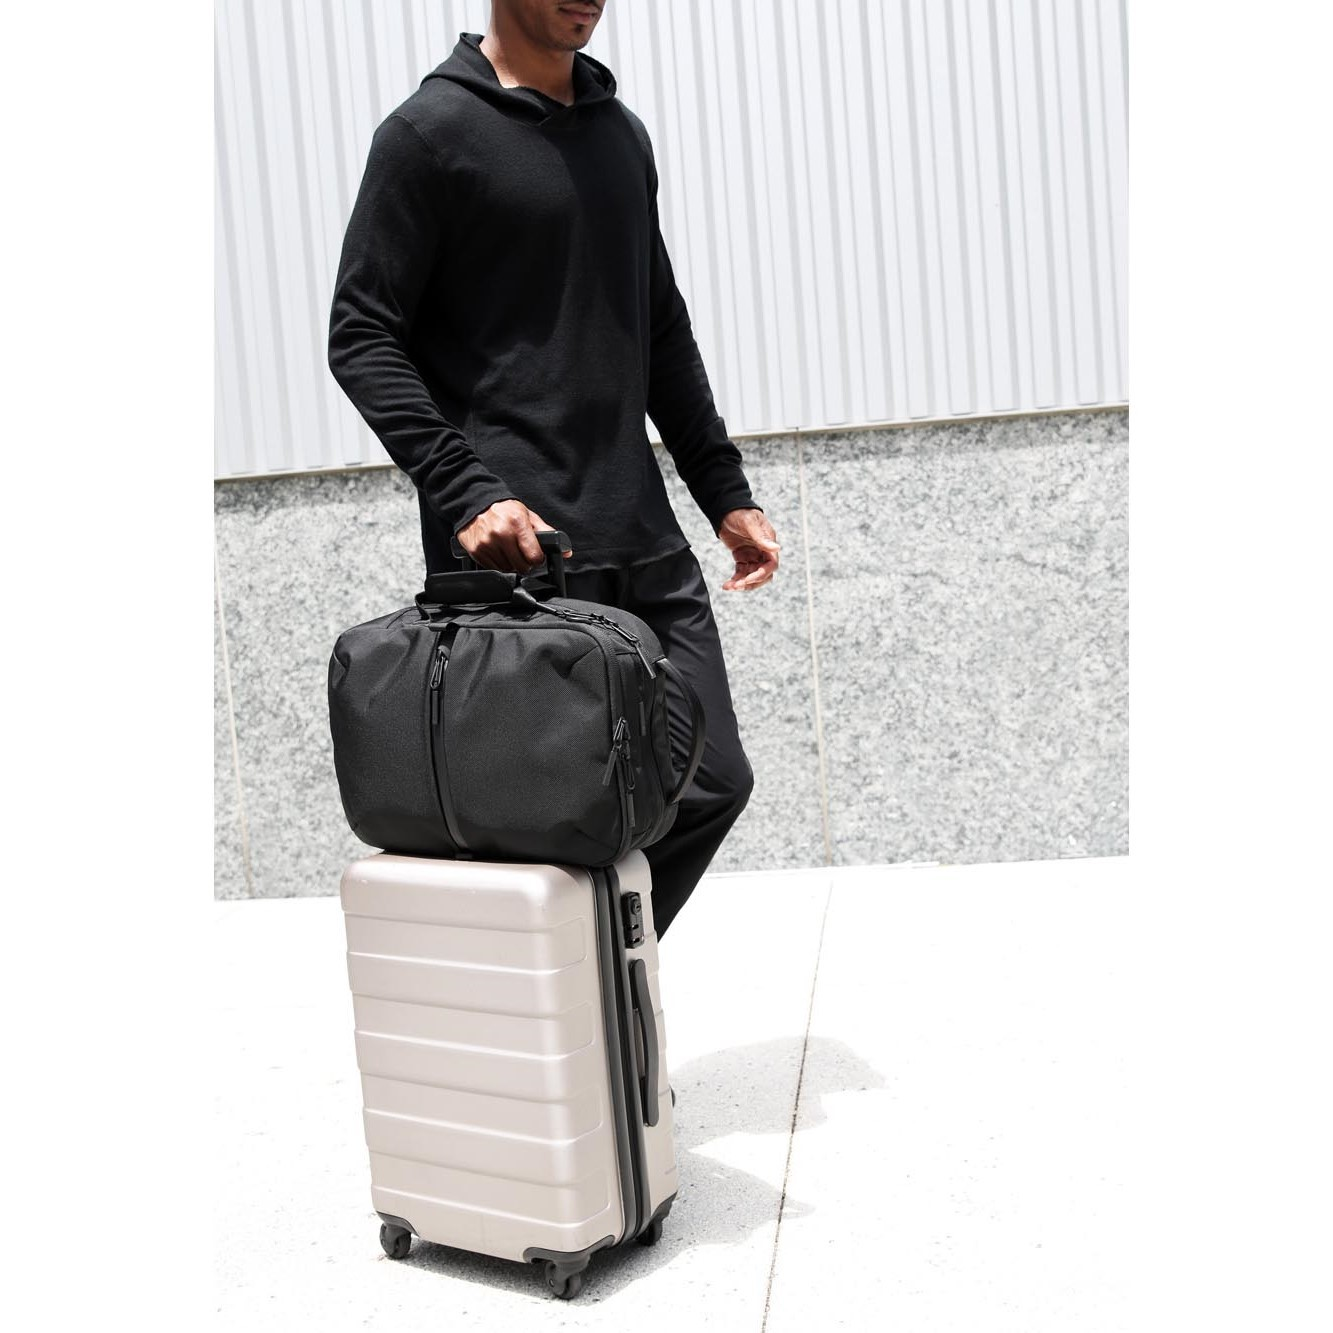 21010_flt2_black_luggage.jpg